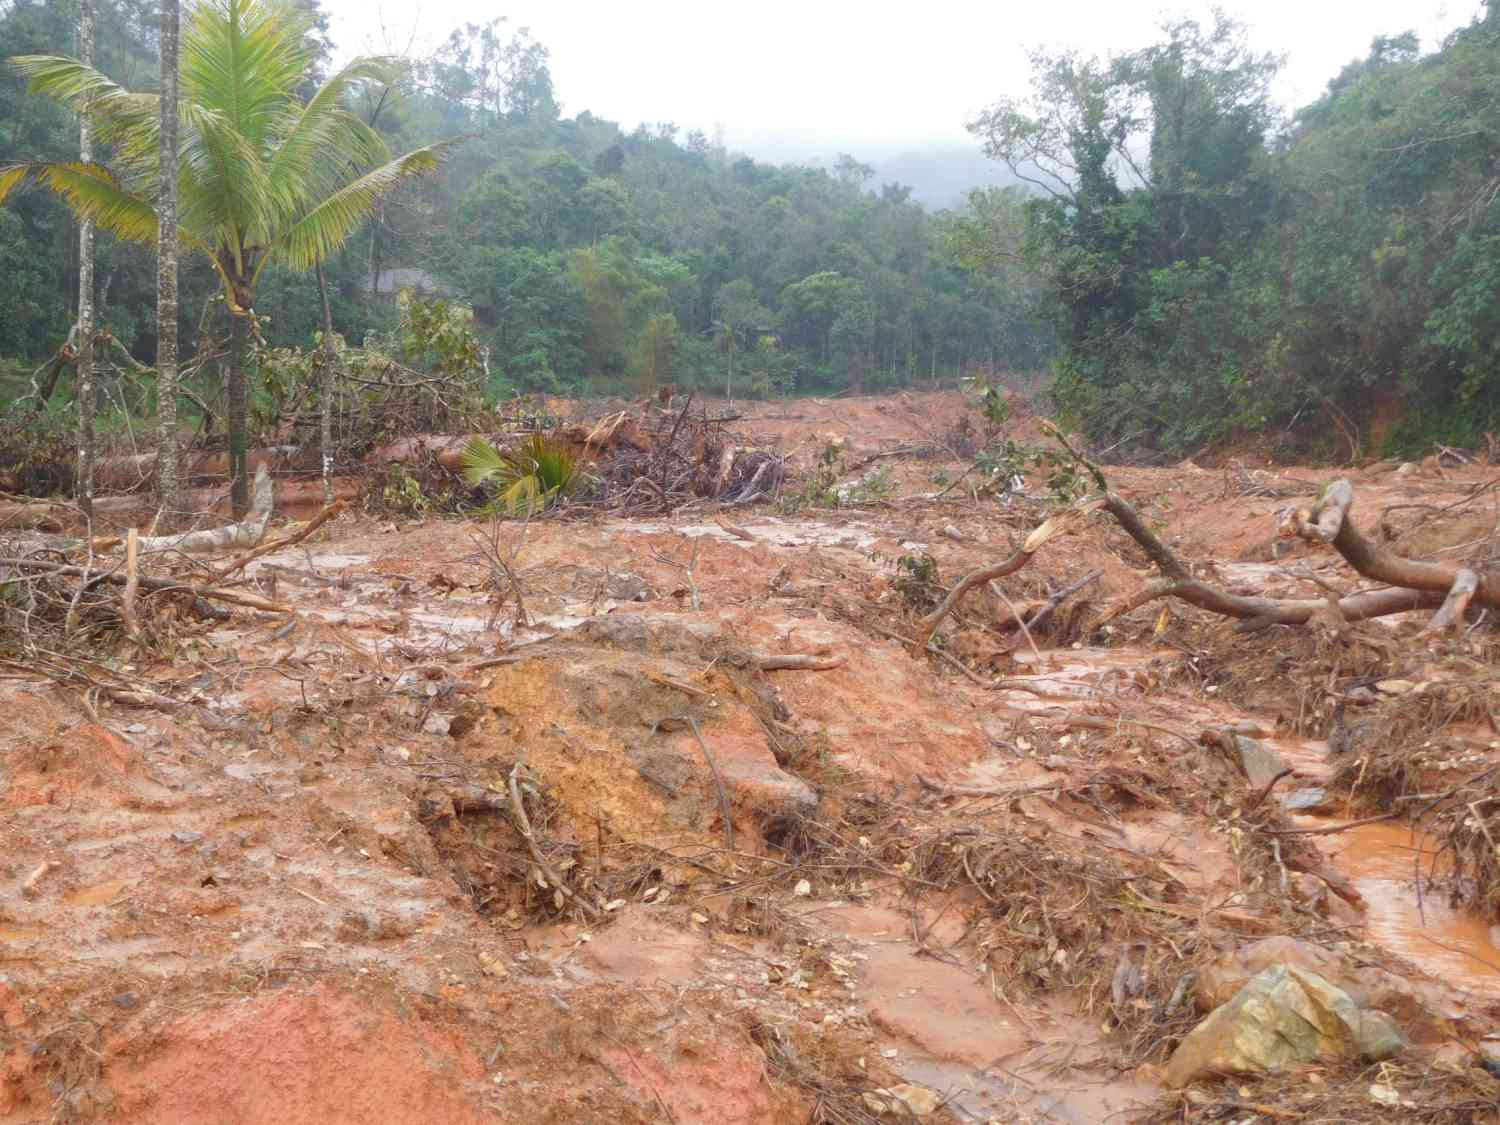 A view of the damage caused by the landslide in Thacharakolly. (Photo credit: TA Ameerudheen).